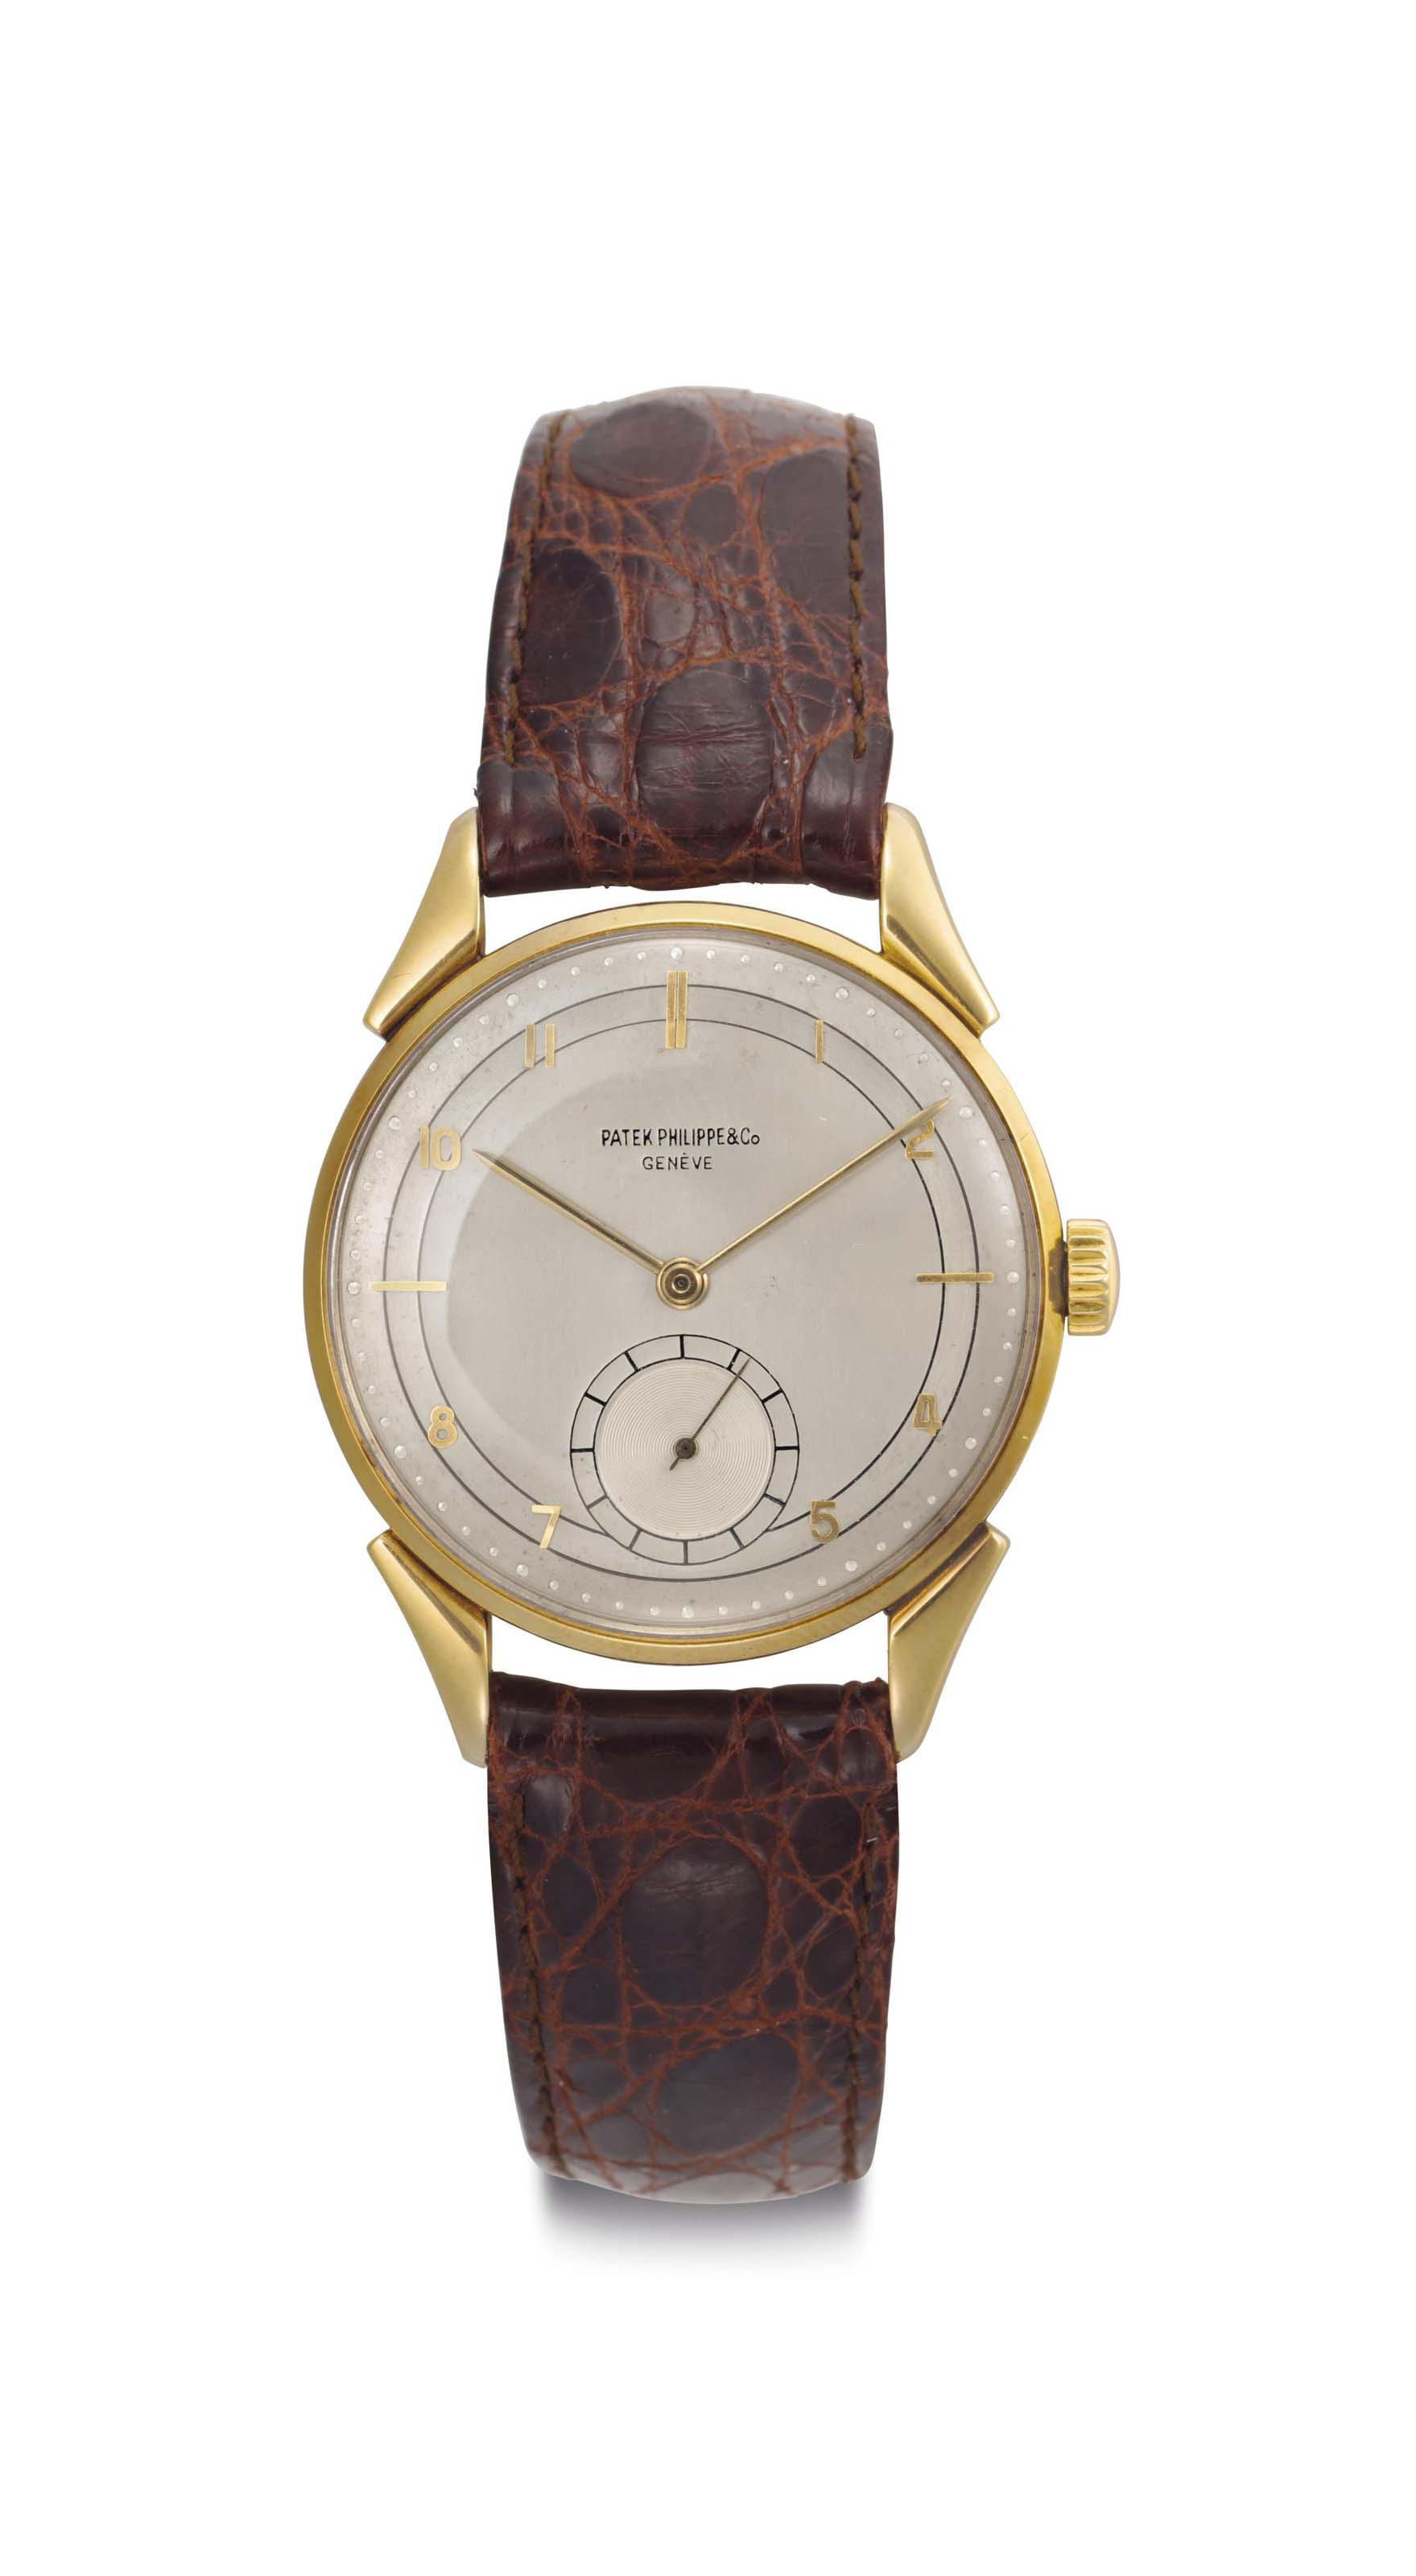 Patek Philippe. A Fine 18k Gold Wristwatch with Two-Tone Dial and Fancy Lugs